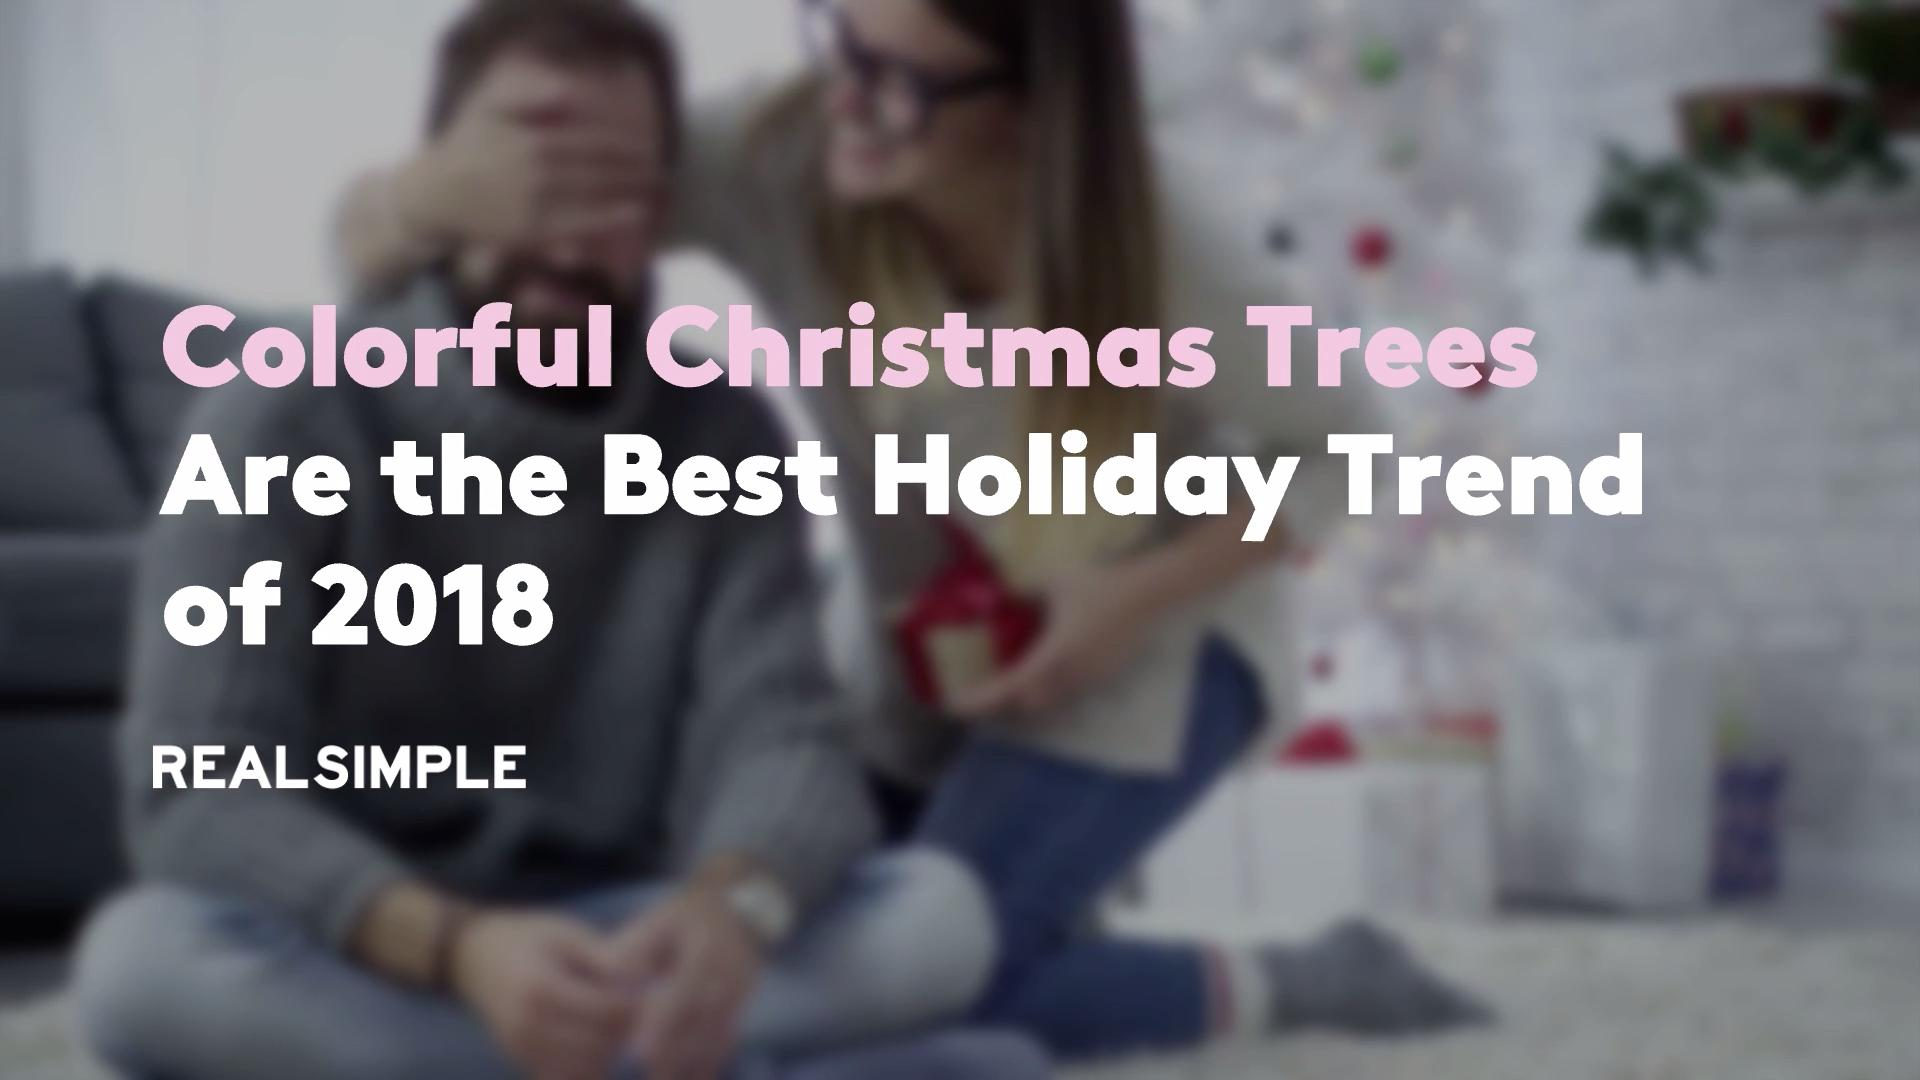 Colorful Christmas Trees Are the Best Holiday Trend of 2018